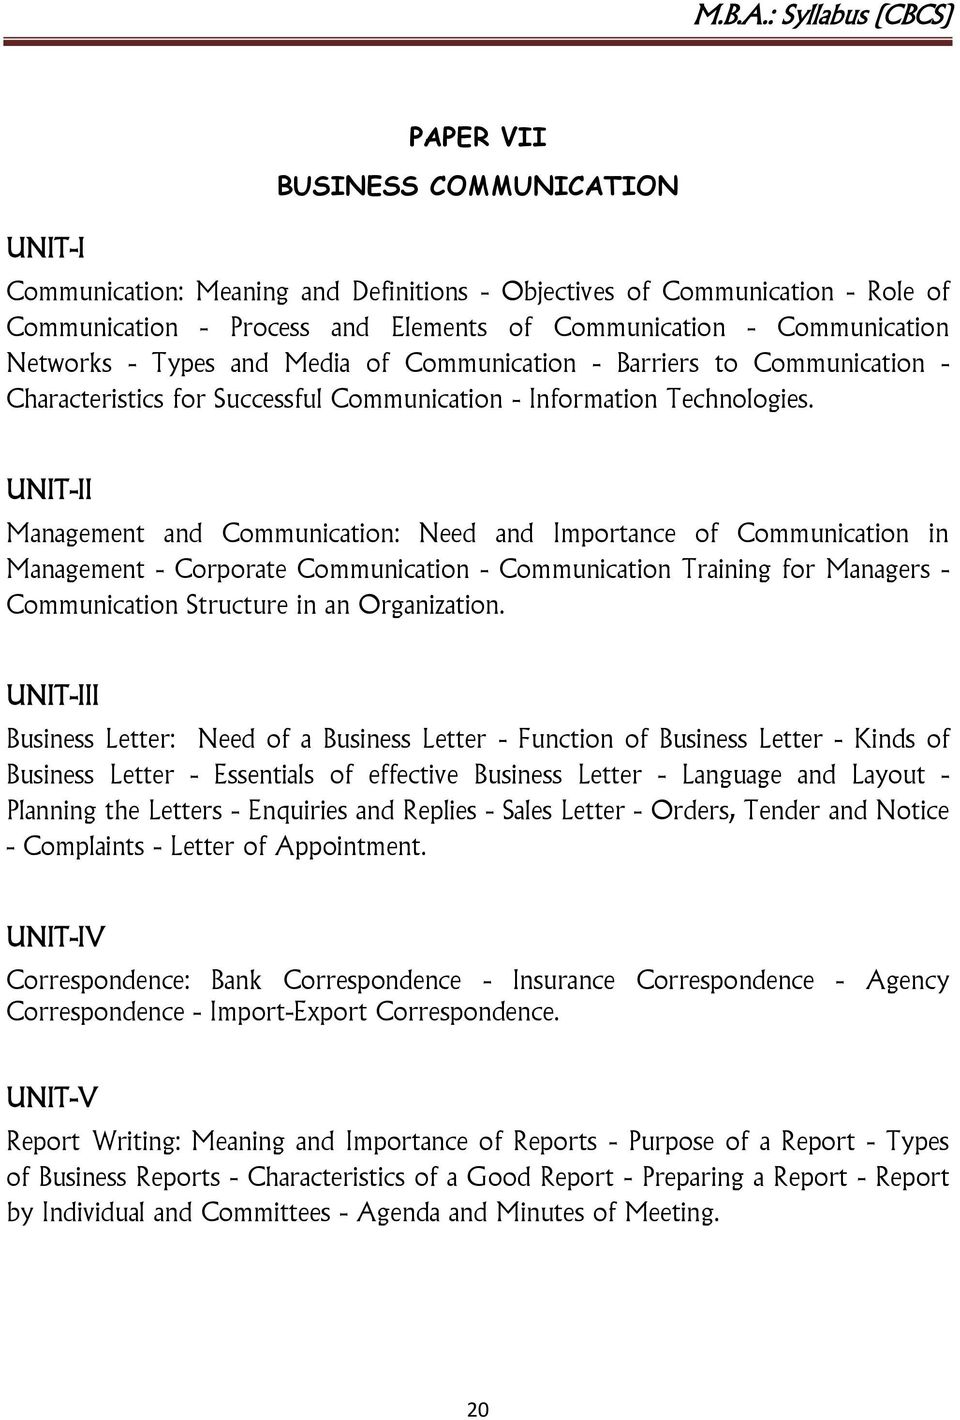 UNIT-II Management and Communication: Need and Importance of Communication in Management - Corporate Communication - Communication Training for Managers - Communication Structure in an Organization.